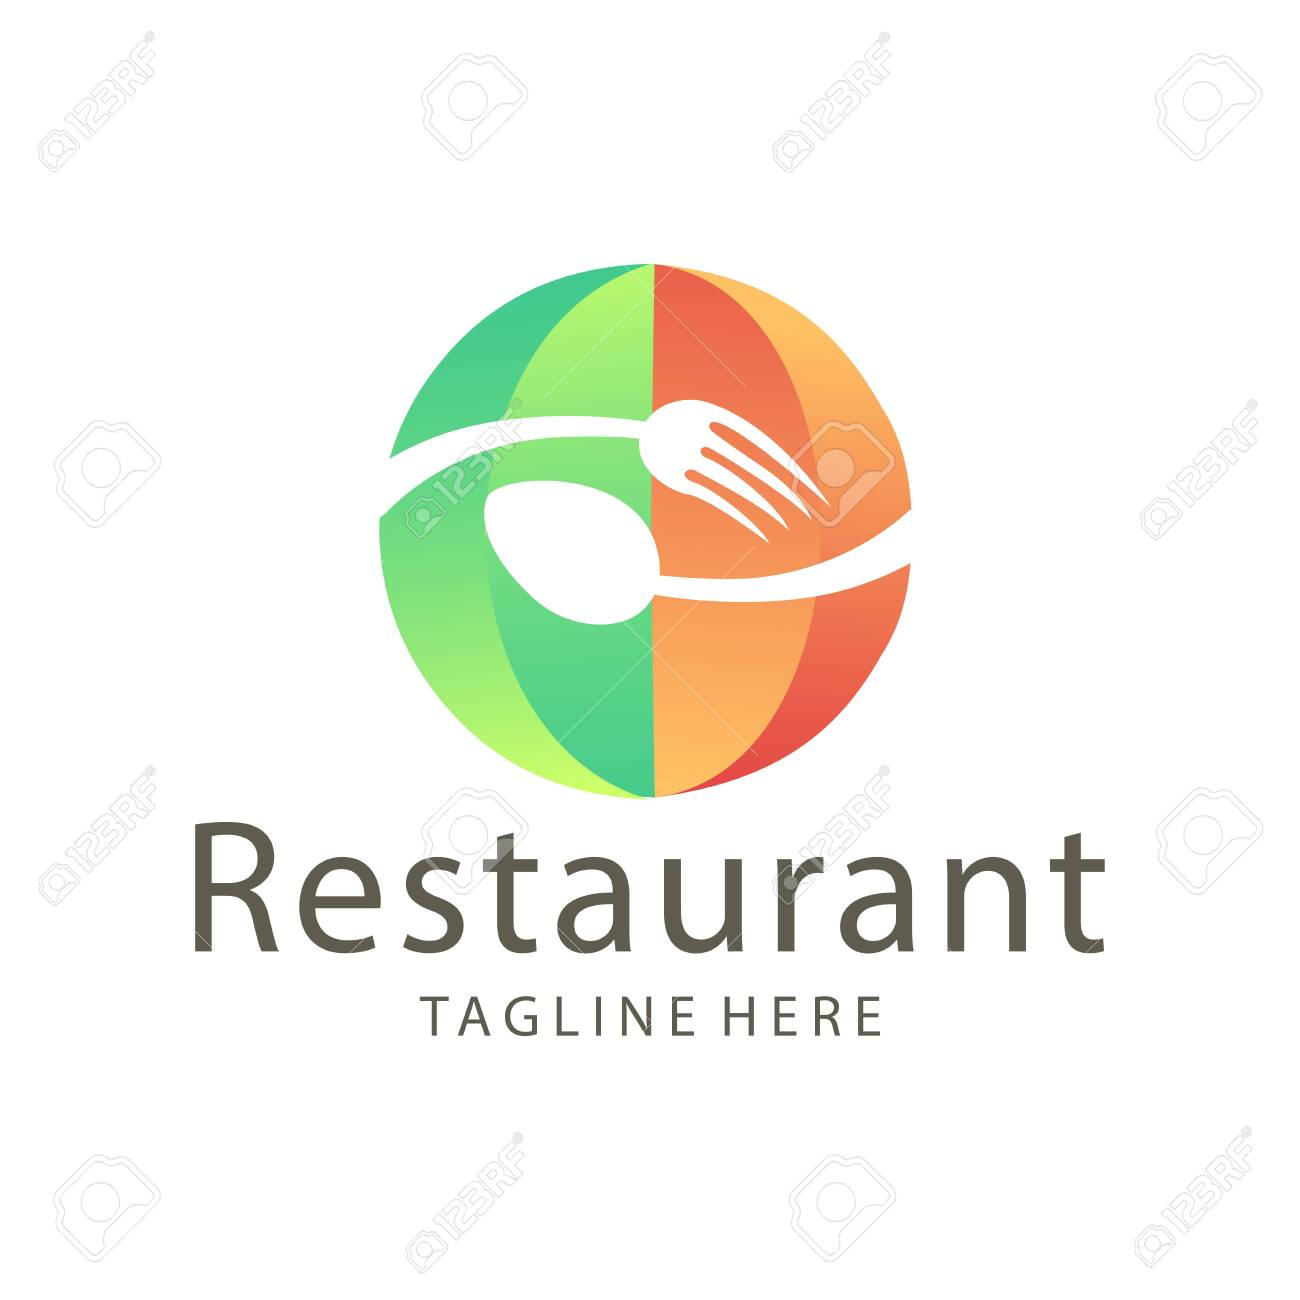 Elegant restaurant food and drink logo design suitable for your